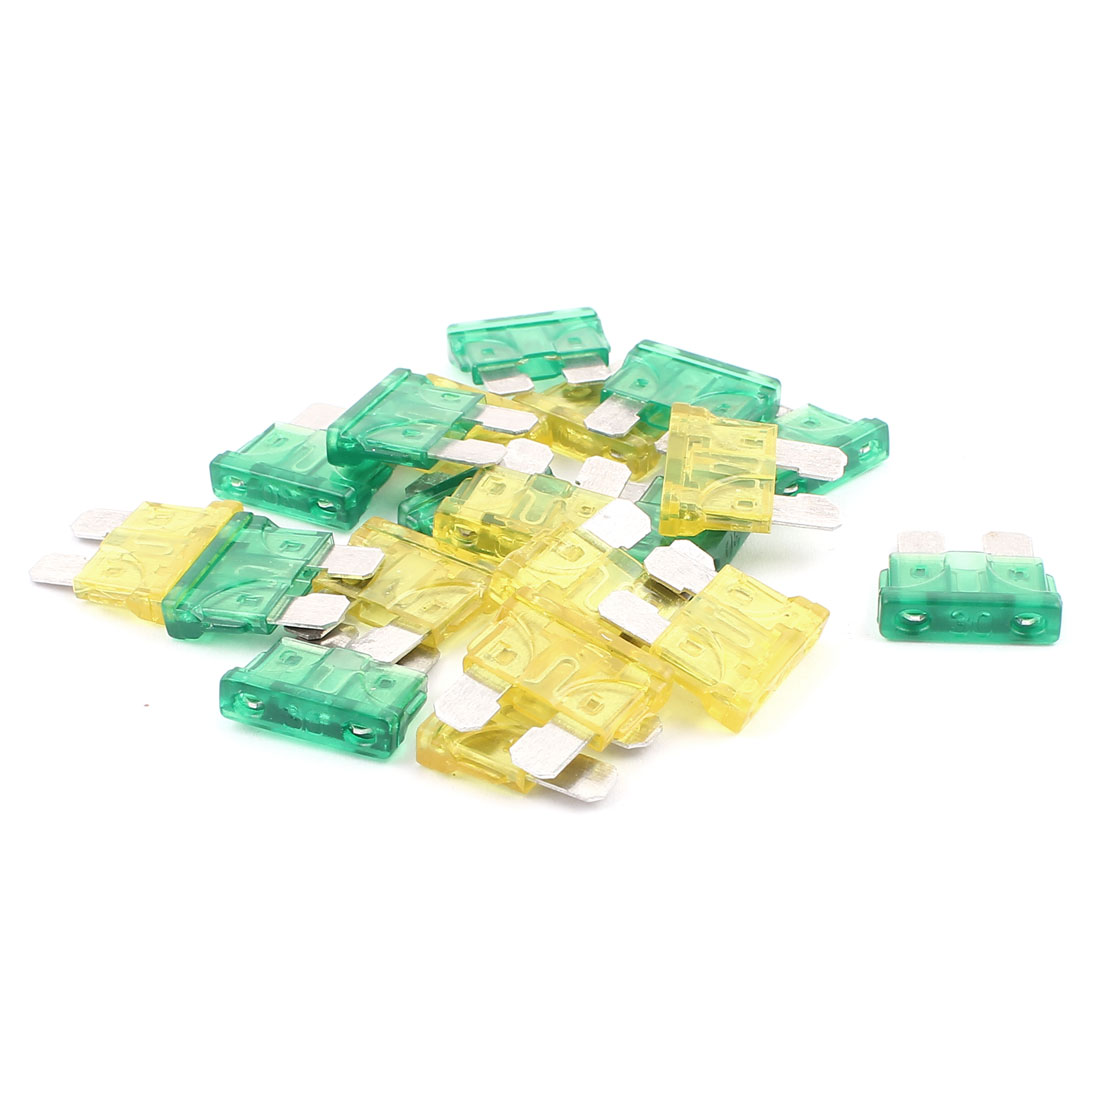 20pcs Yellow Green 30A 20A Plastic Case Mini Blade Fuse for Car Truck Vehicle Motorbike SUV